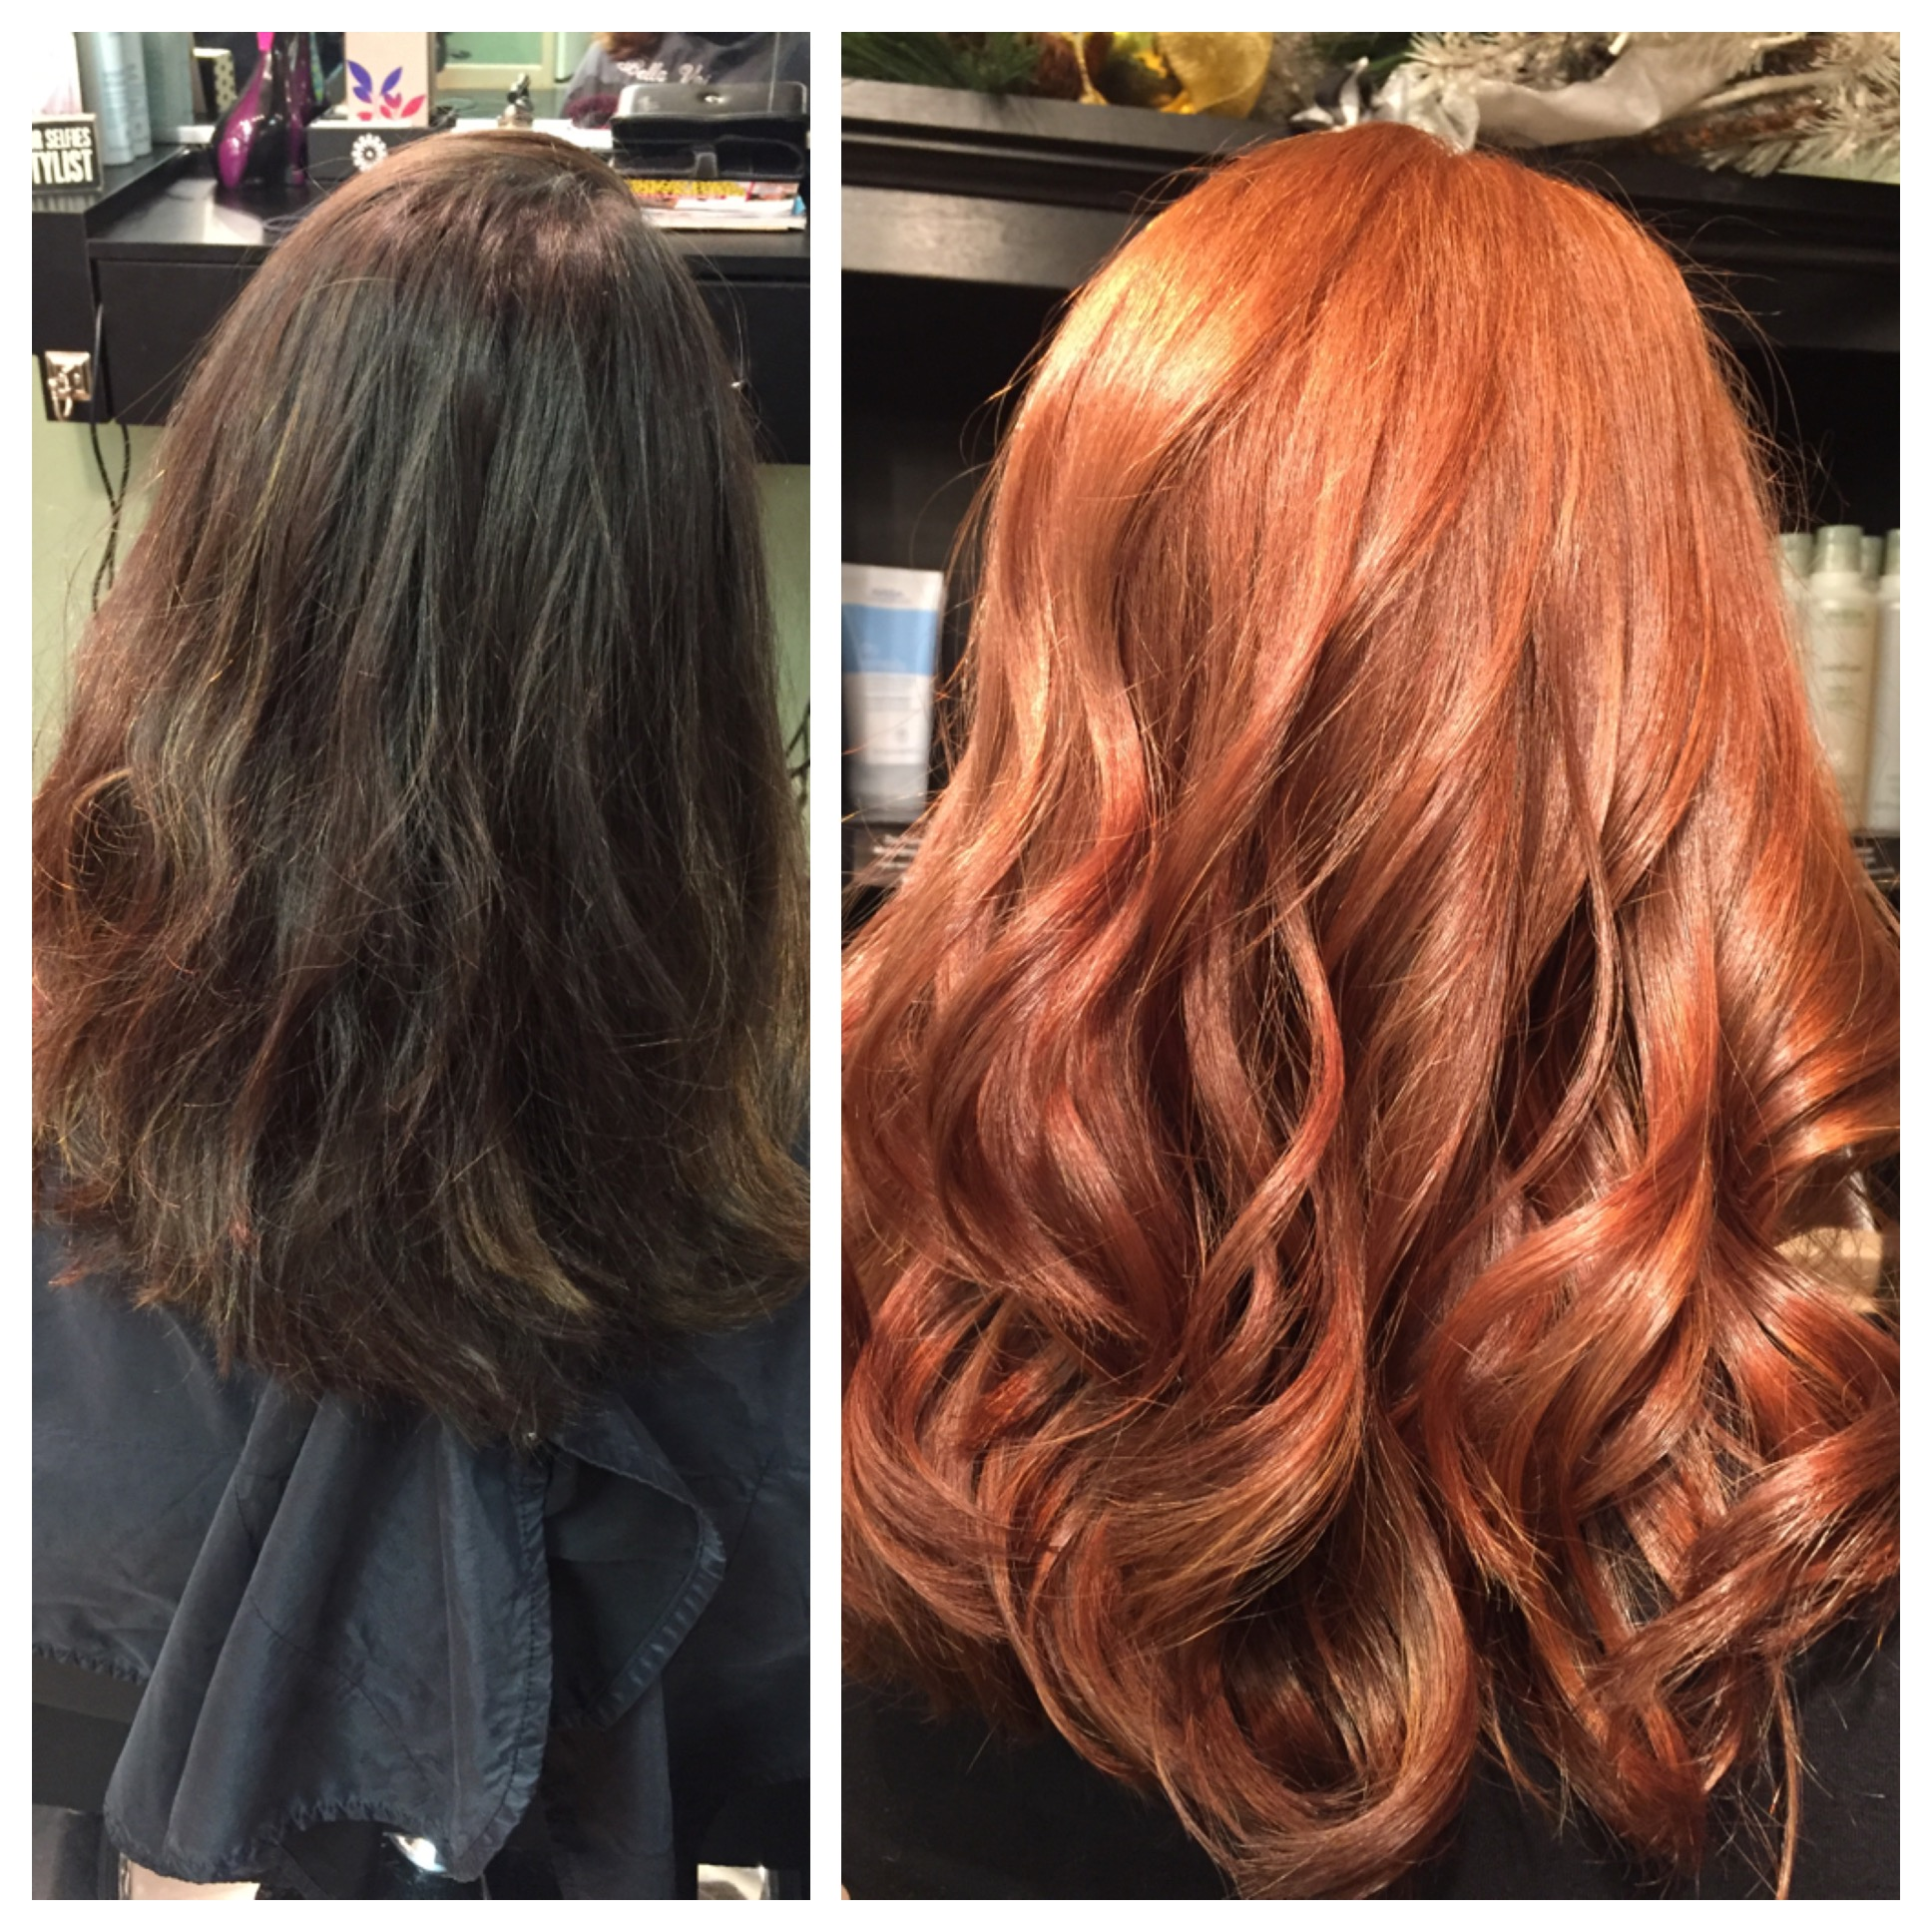 Makeover: Virgin to Ginger - SO SIMPLE!